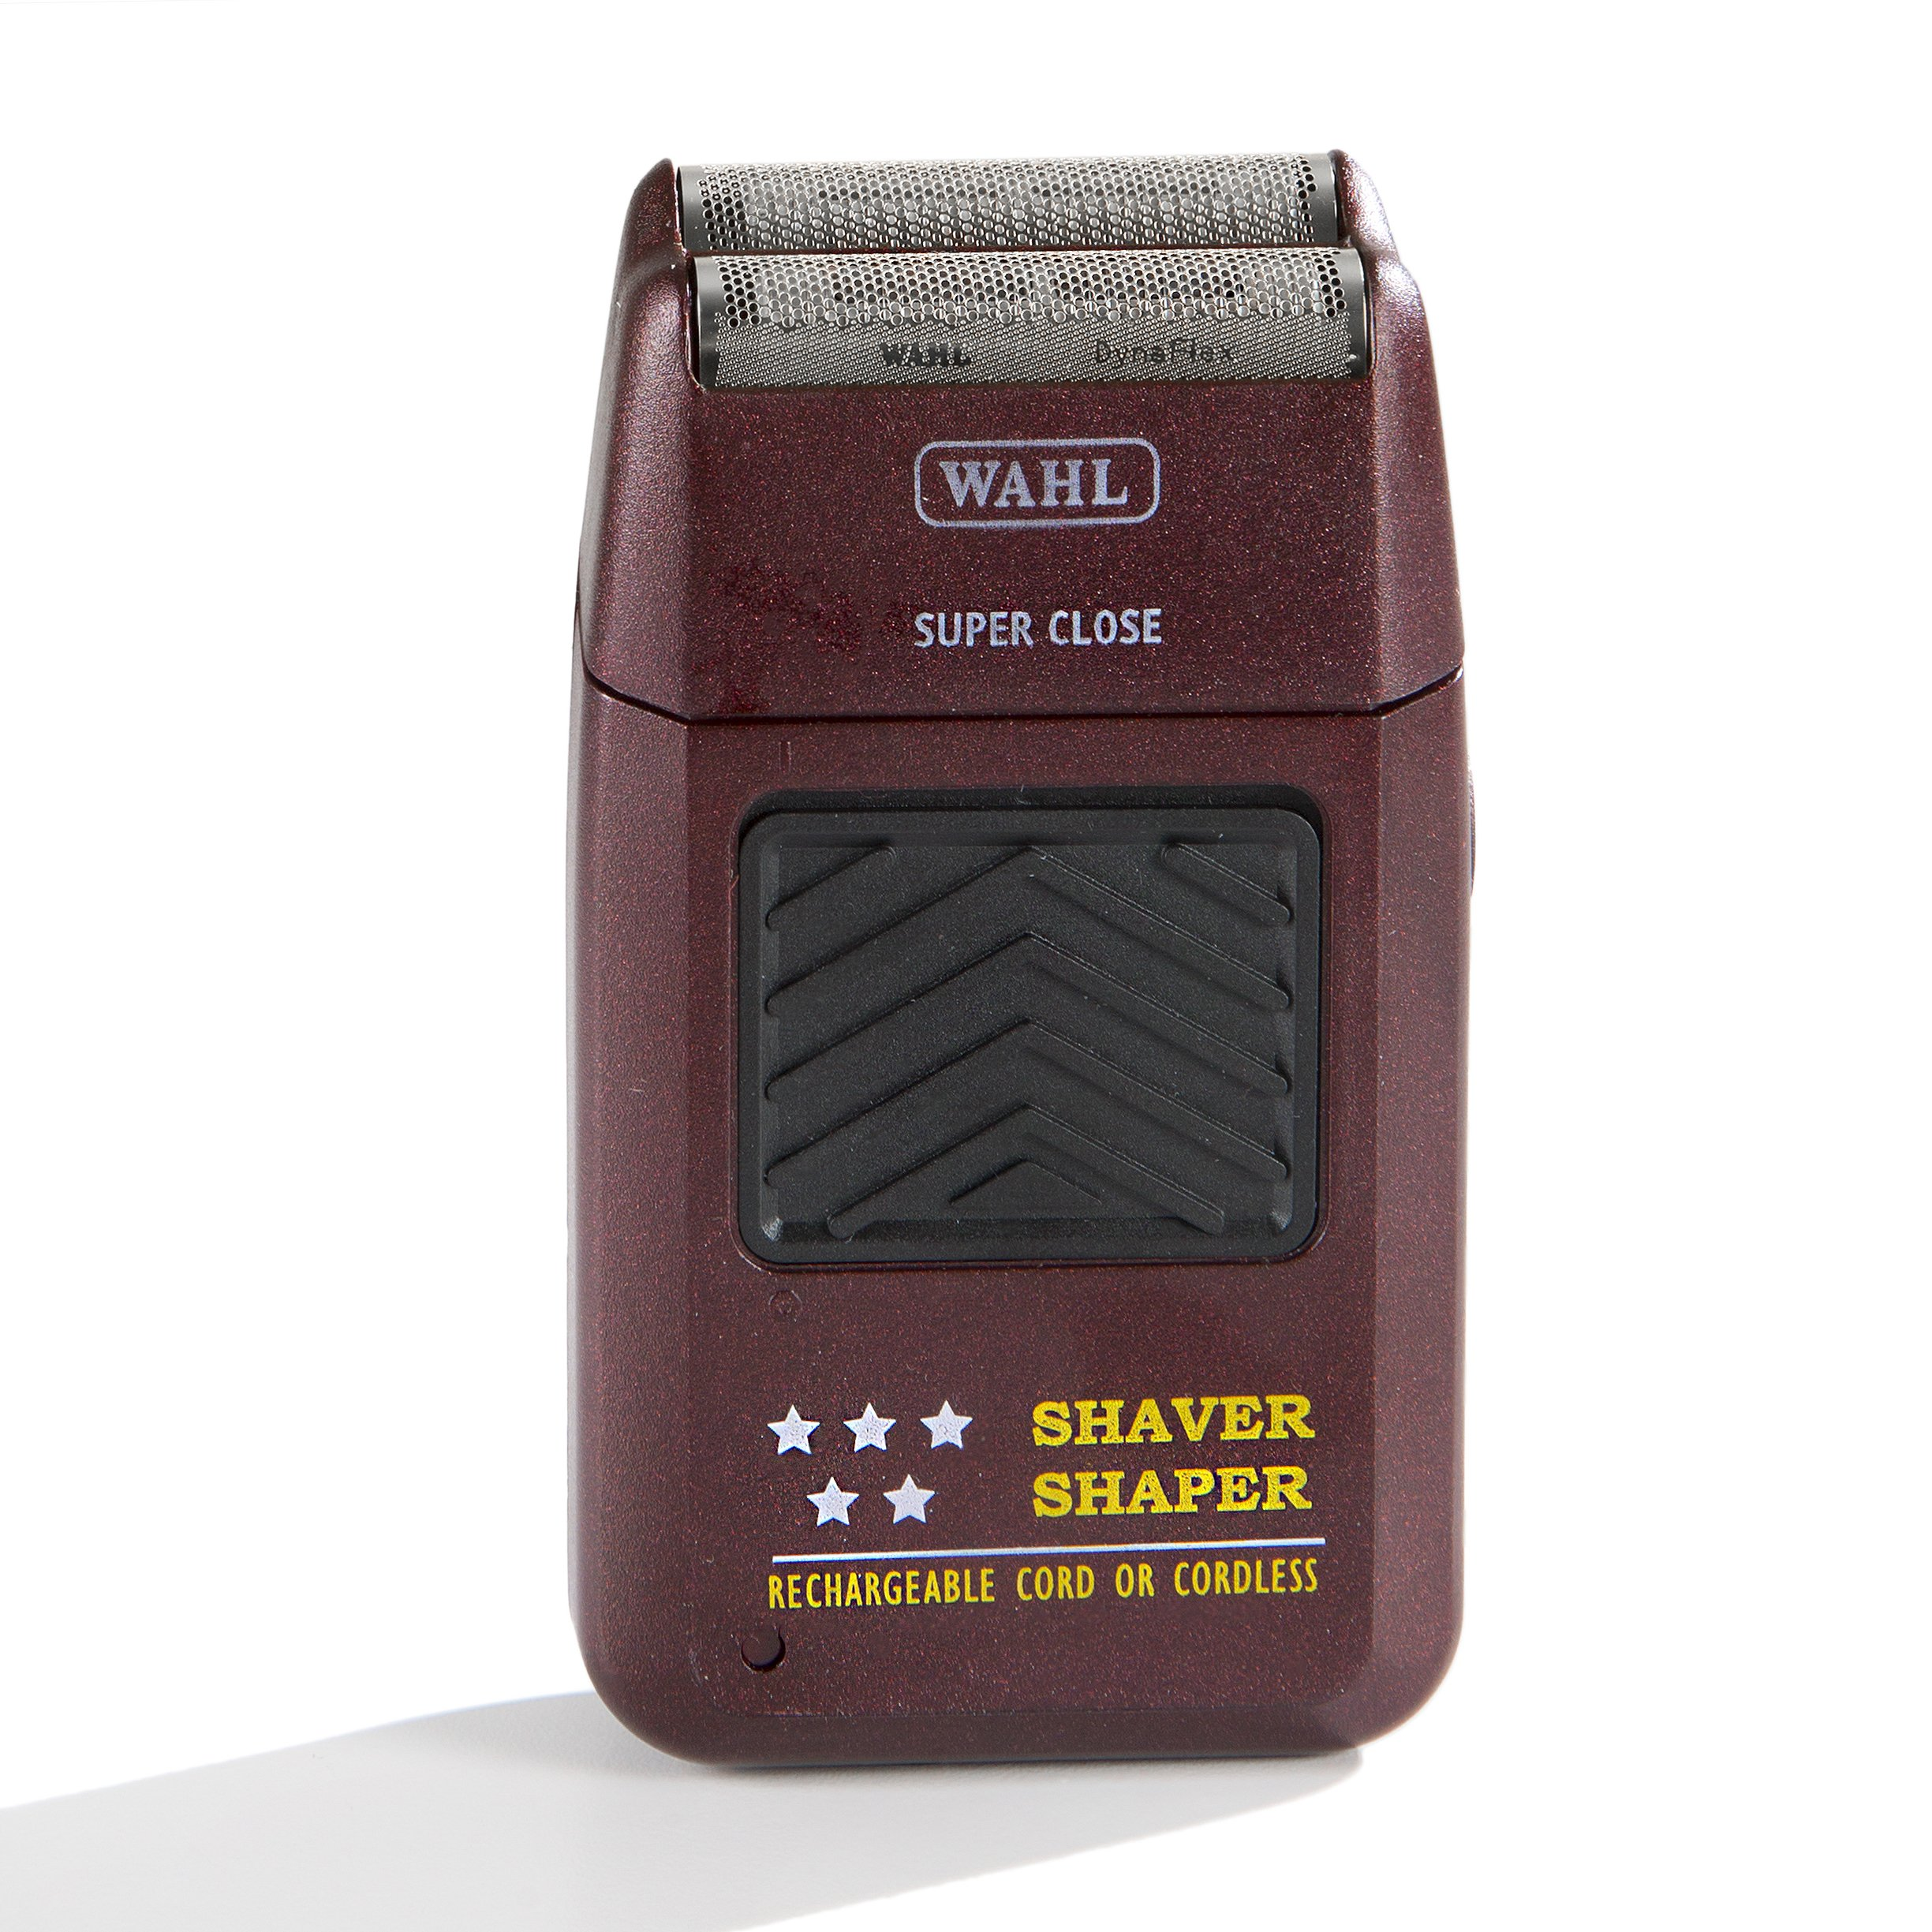 Wahl Professional 5-Star Series #7031-400 Replacement Foil Assembly – Red & Silver – Super Close by Wahl Professional (Image #4)